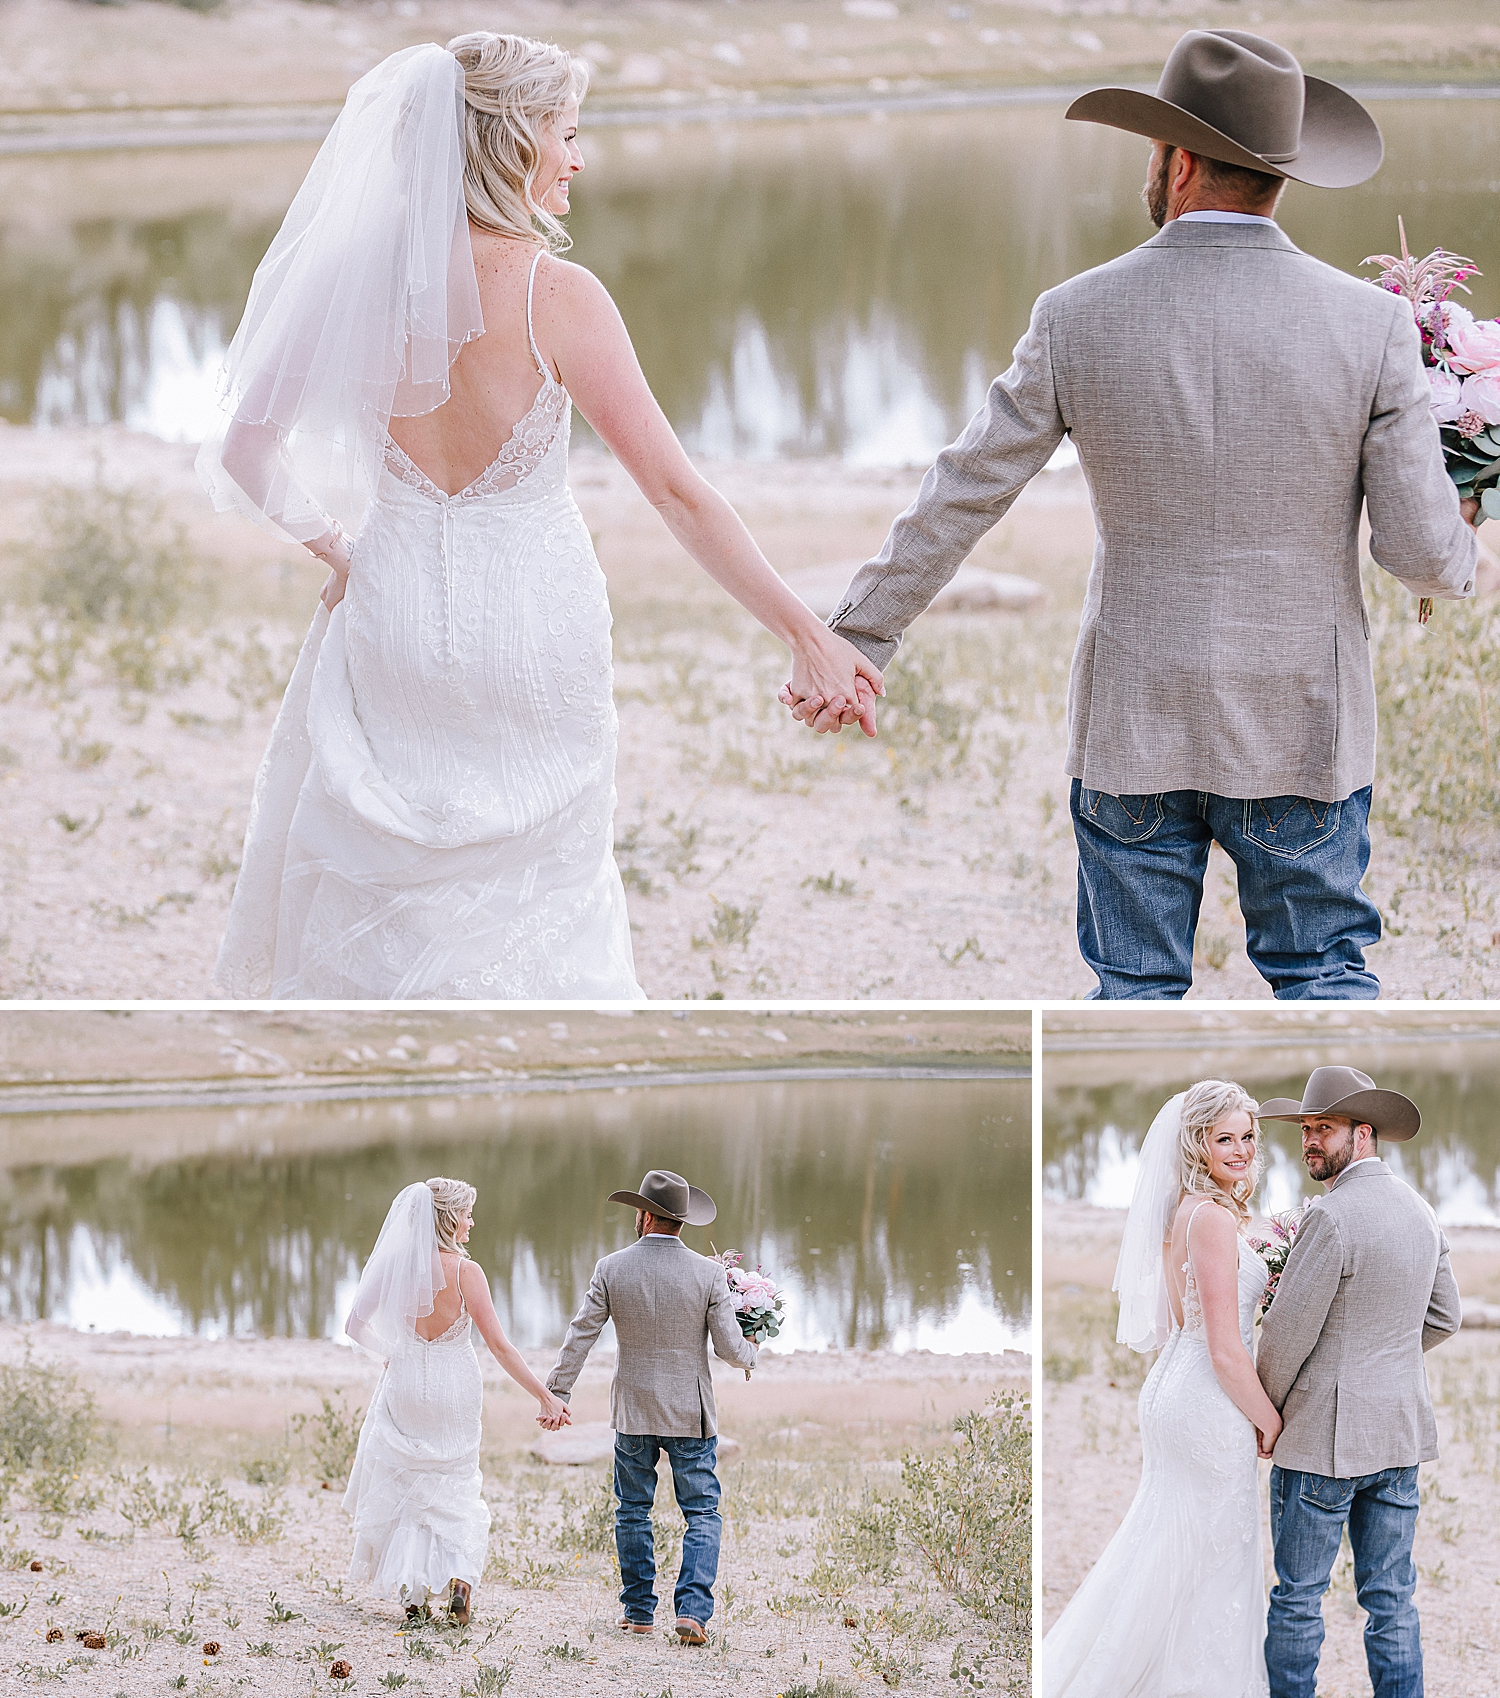 Carly-Barton-Photography-Rocky-Mountain-National-Park-Estes-Park-Wedding-Elopement_0029.jpg